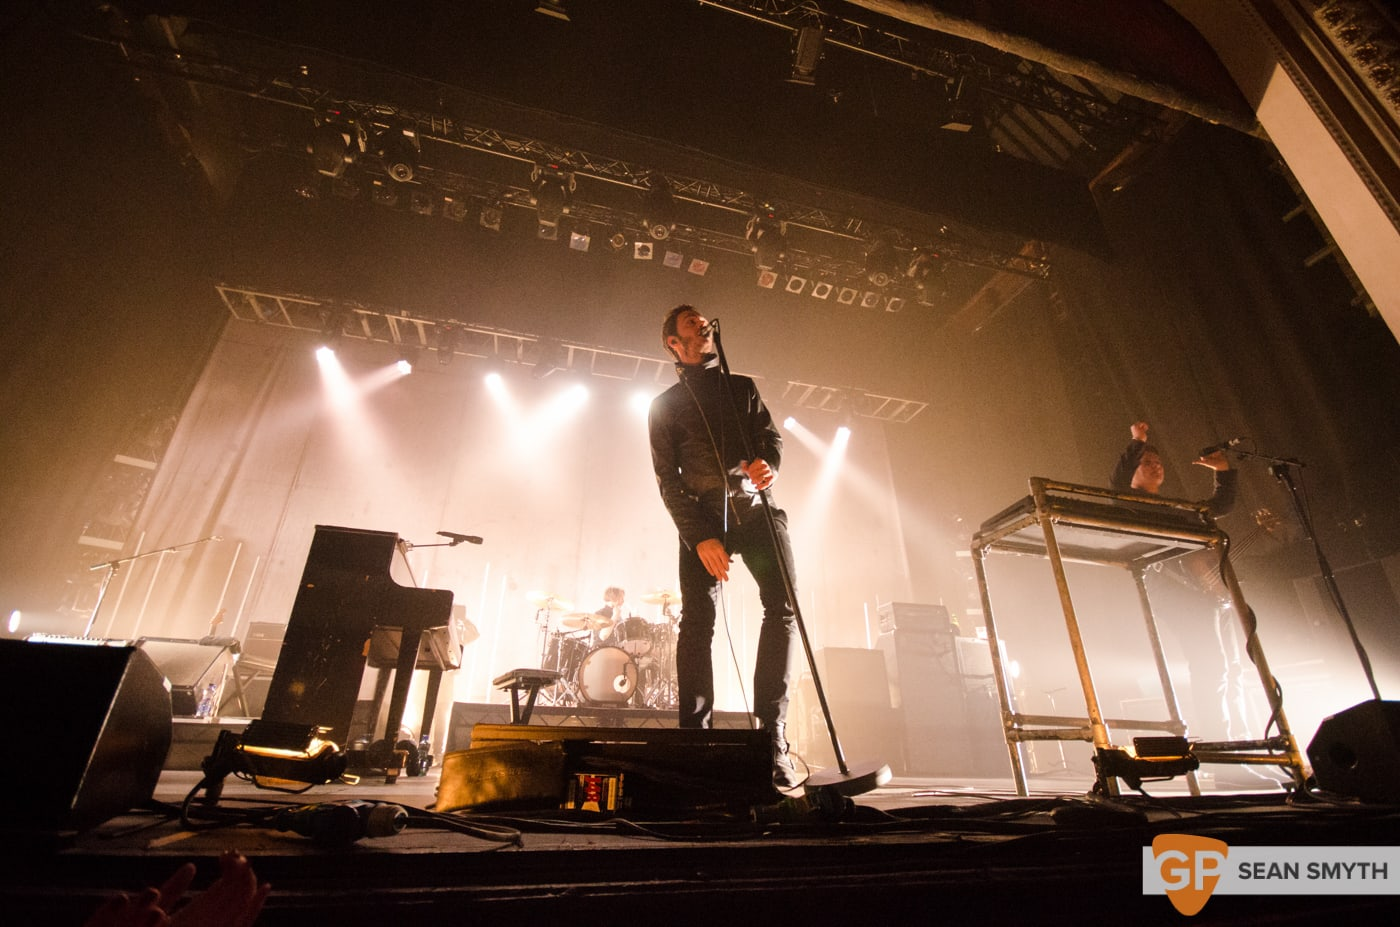 editors-at-the-olympia-theatre-by-sean-smyth-10-10-15-22-of-28_22100459691_o